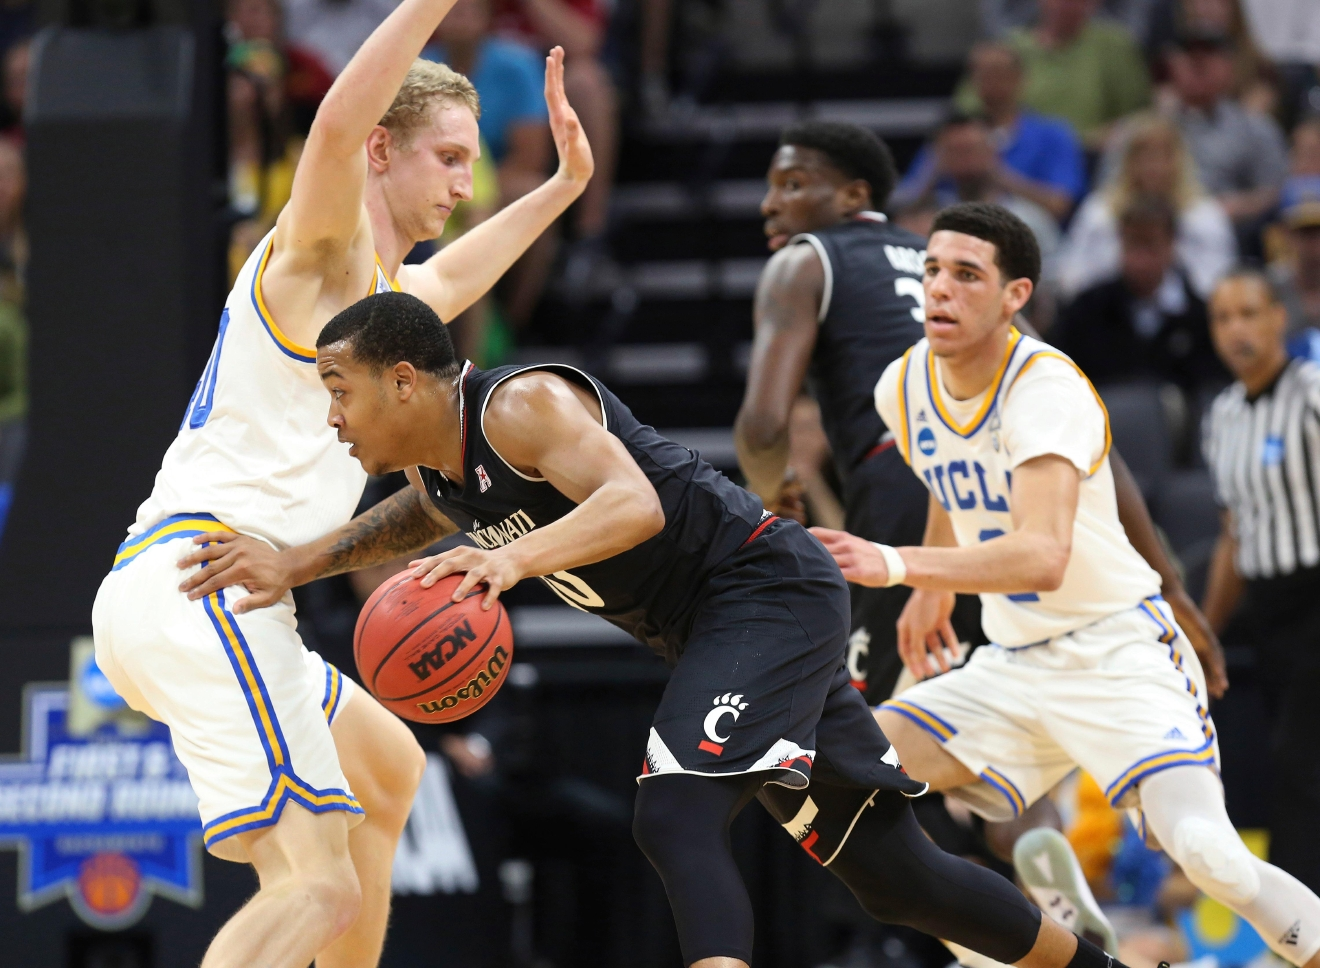 Cincinnati guard Troy Caupain, right, drives against UCLA center Thomas Welsh, left, during the first half of a second-round game of the NCAA men's college basketball tournament in Sacramento, Calif., Sunday, March 19, 2017. (AP Photo/Steve Yeater)